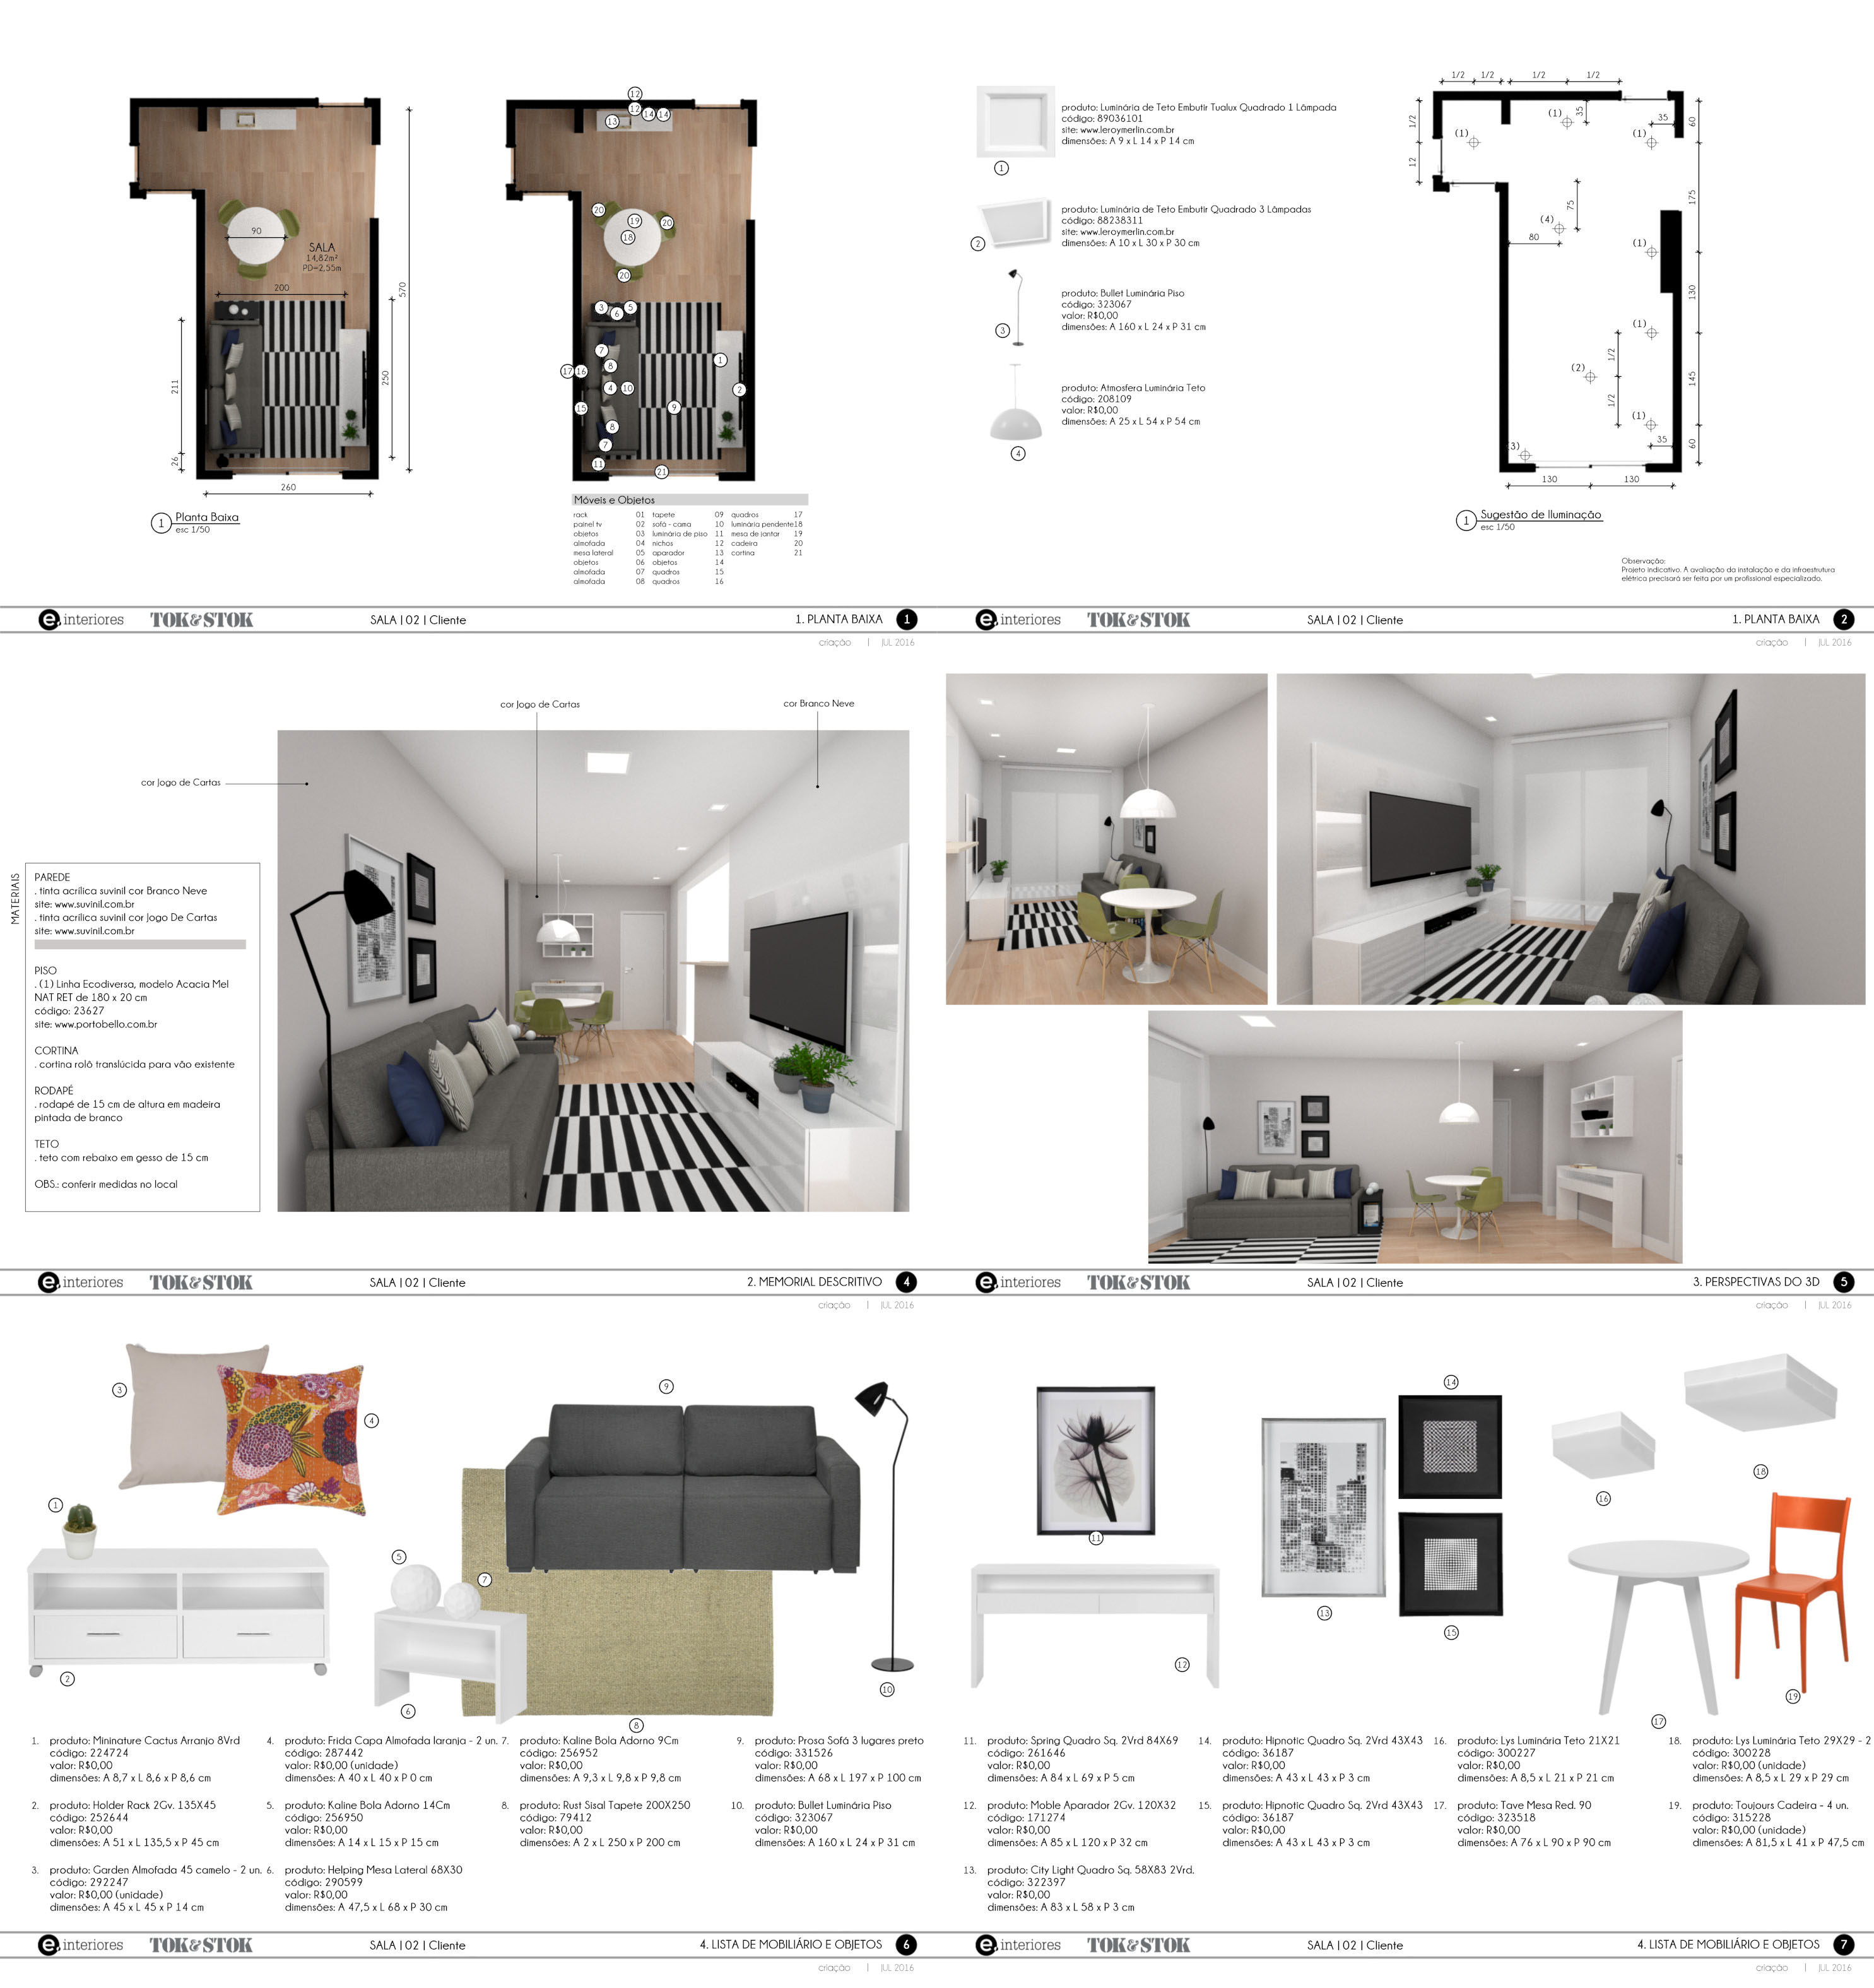 E interiores next generation interior design with blender home of the blender for Interior design project management software